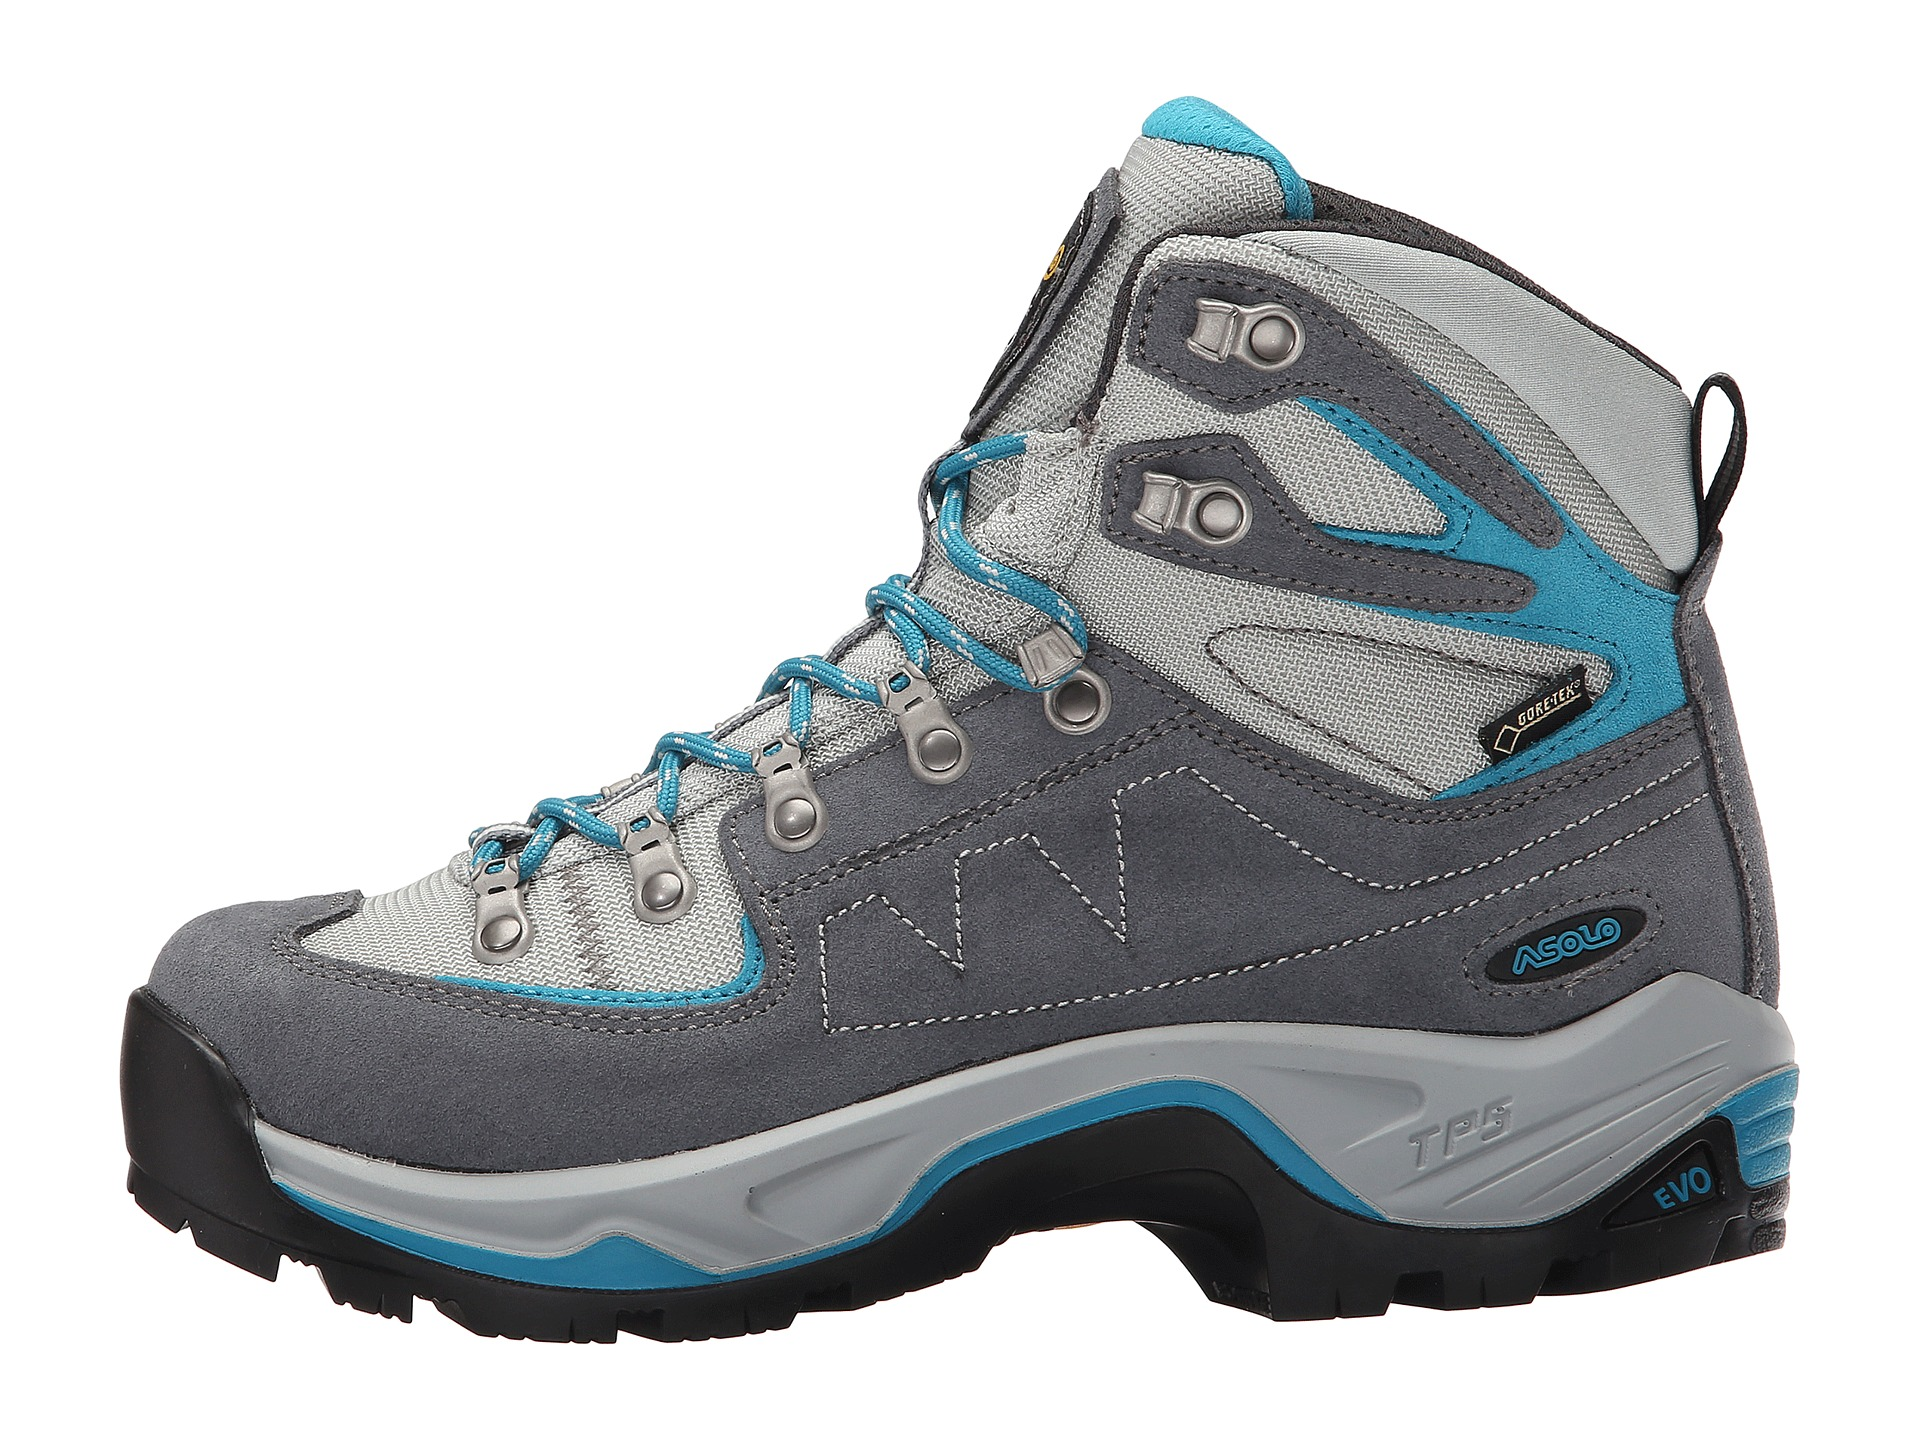 Keen Hiking Shoes Men Images For Reviews